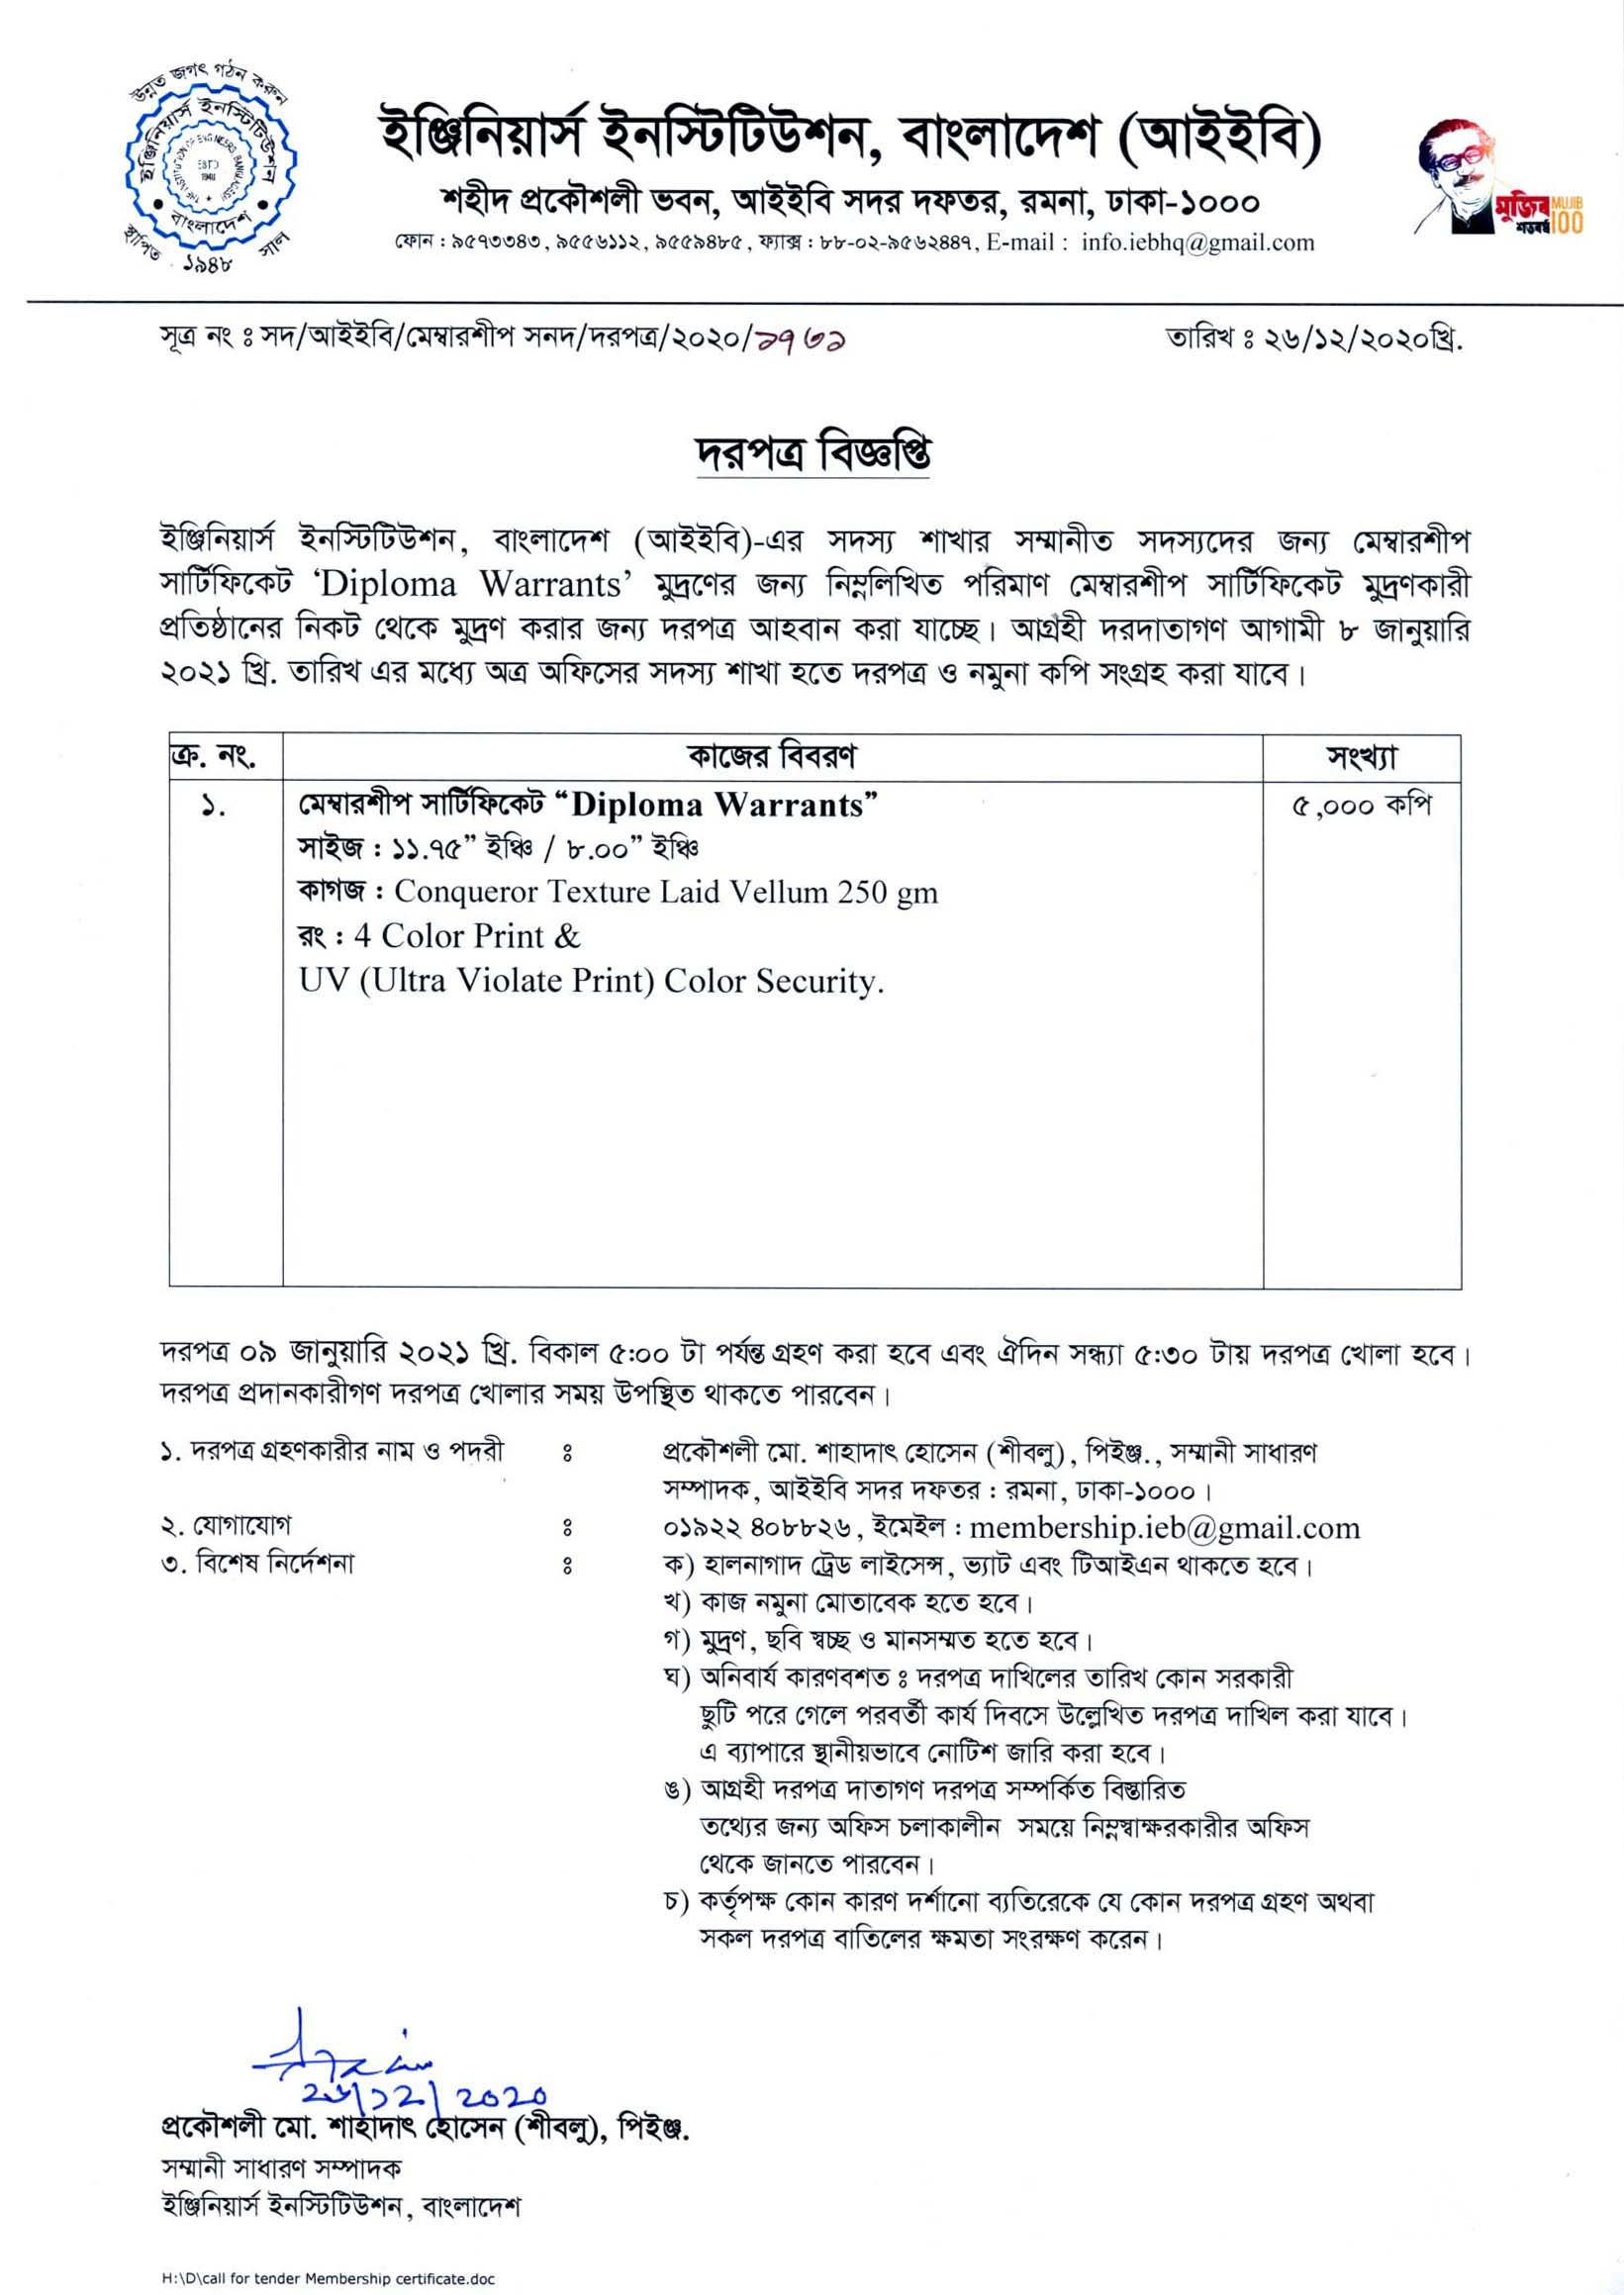 Tender Invitation Notice 26-12-2020